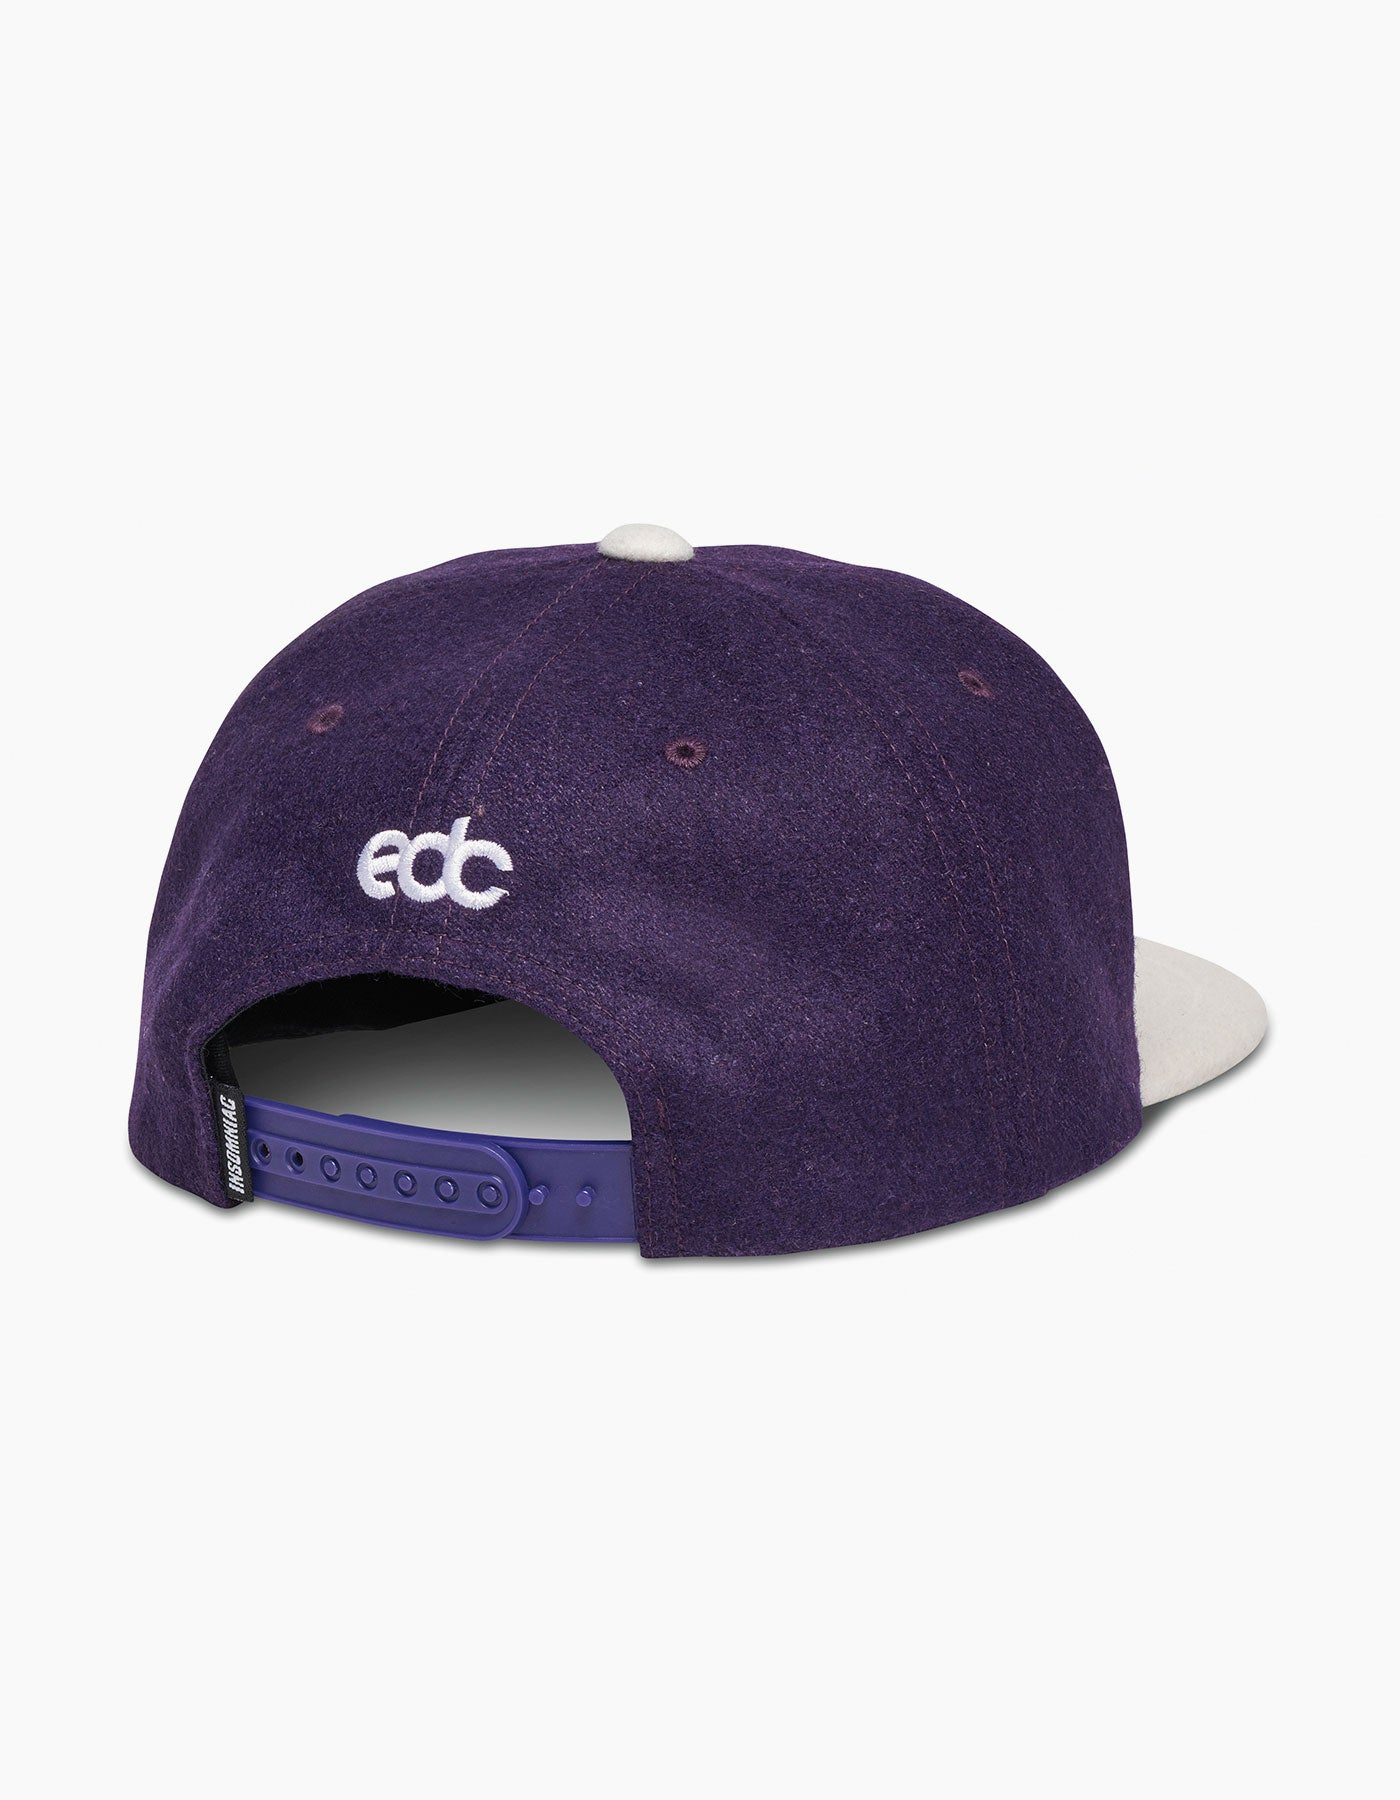 EDC Rainbow Chenille Cap Purple